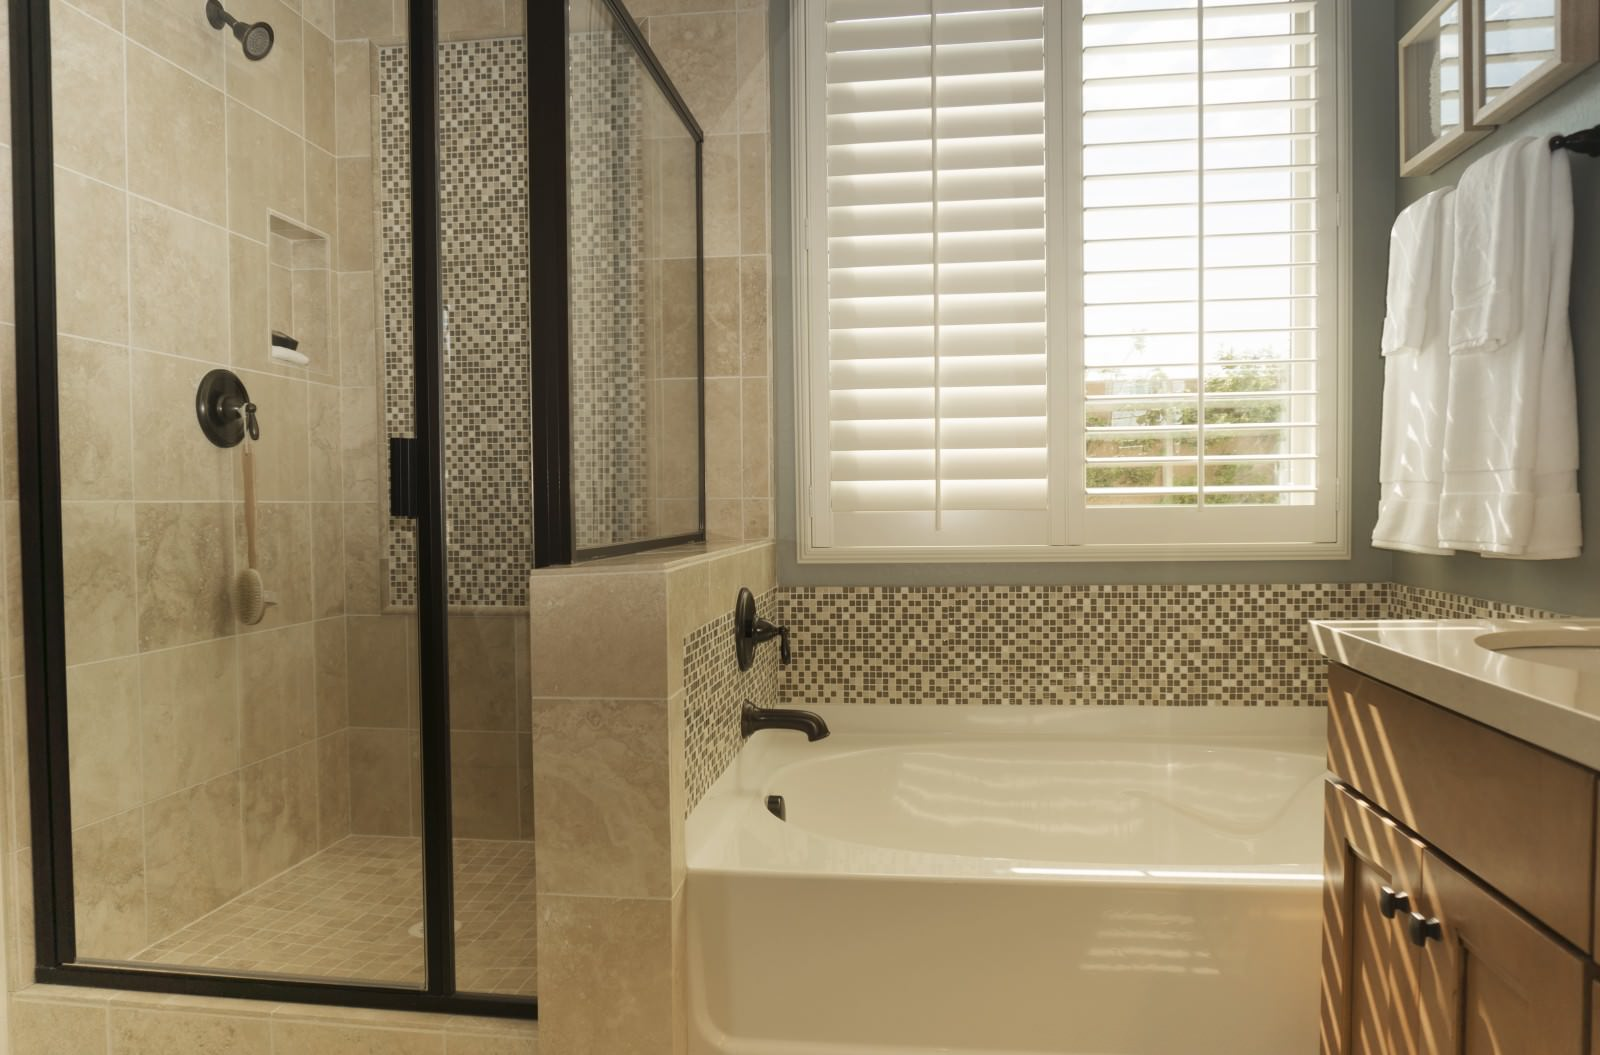 Bathroom Shutters - Shuttersouth